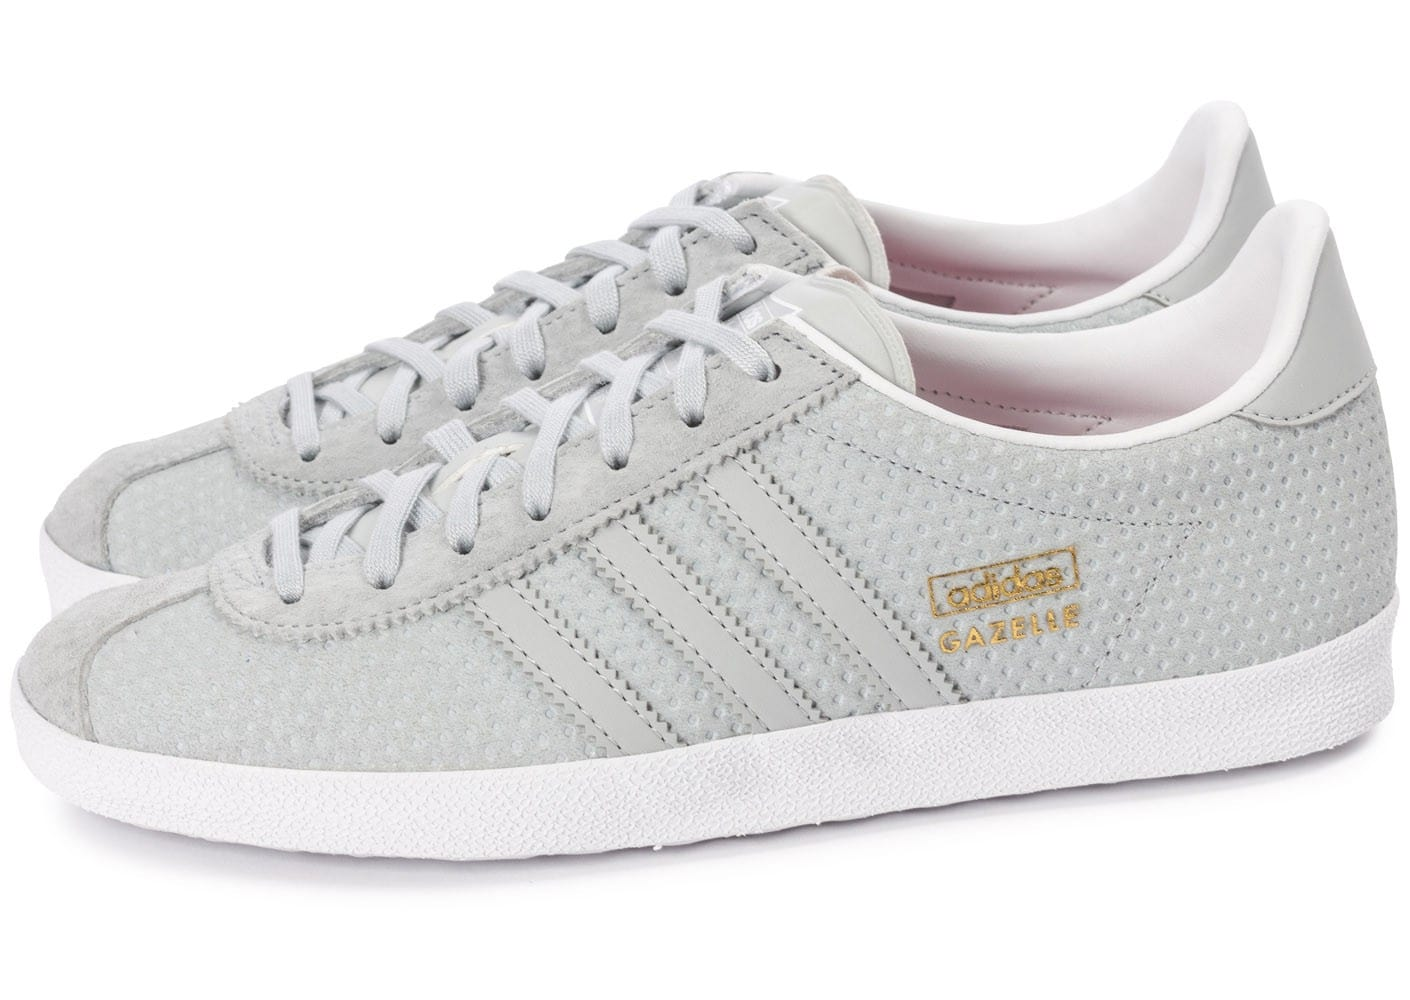 adidas Gazelle OG grise perf Chaussures adidas Chausport